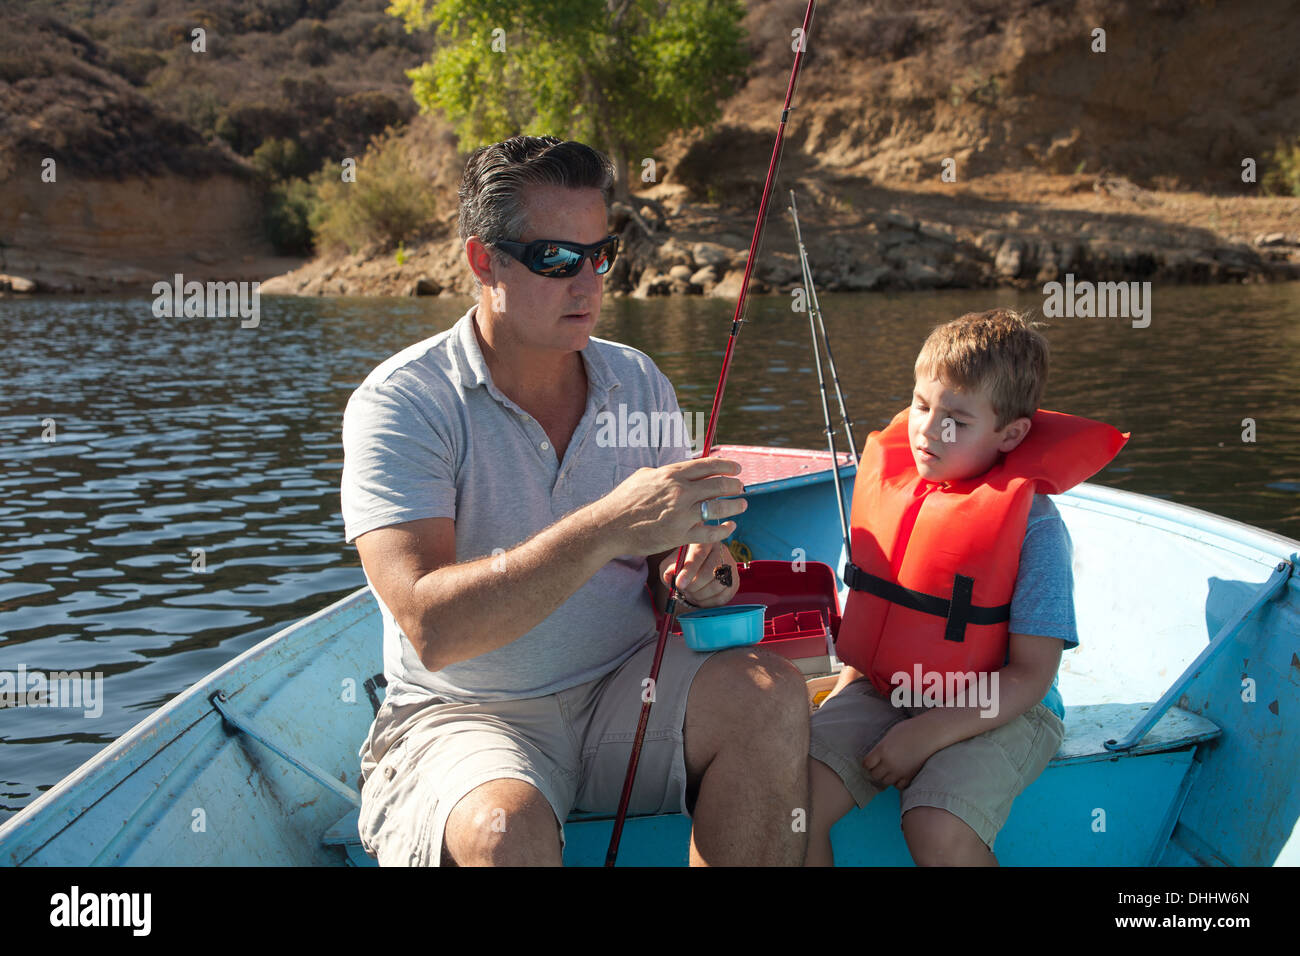 Father and son on fishing trip - Stock Image